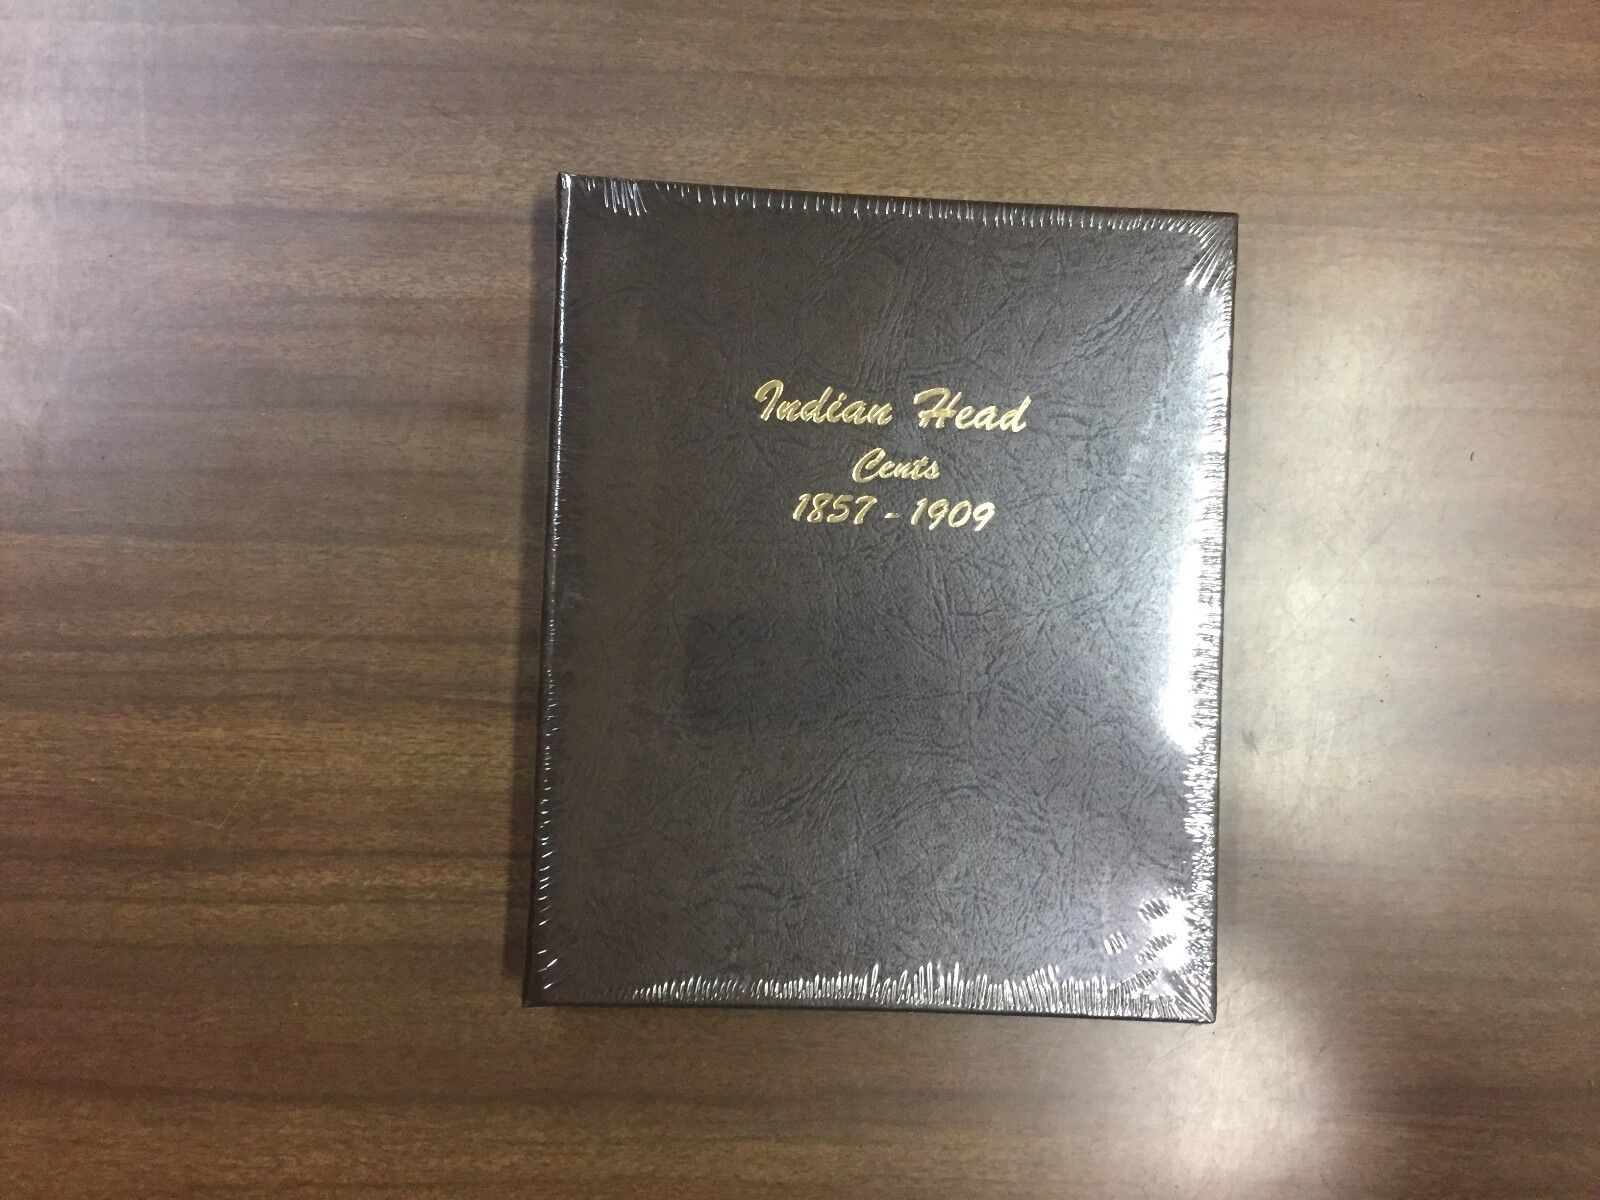 INDIAN HEAD CENT DANSCO ALBUM #7101-1857 to 1909 NO COINS ALL SLEEVES